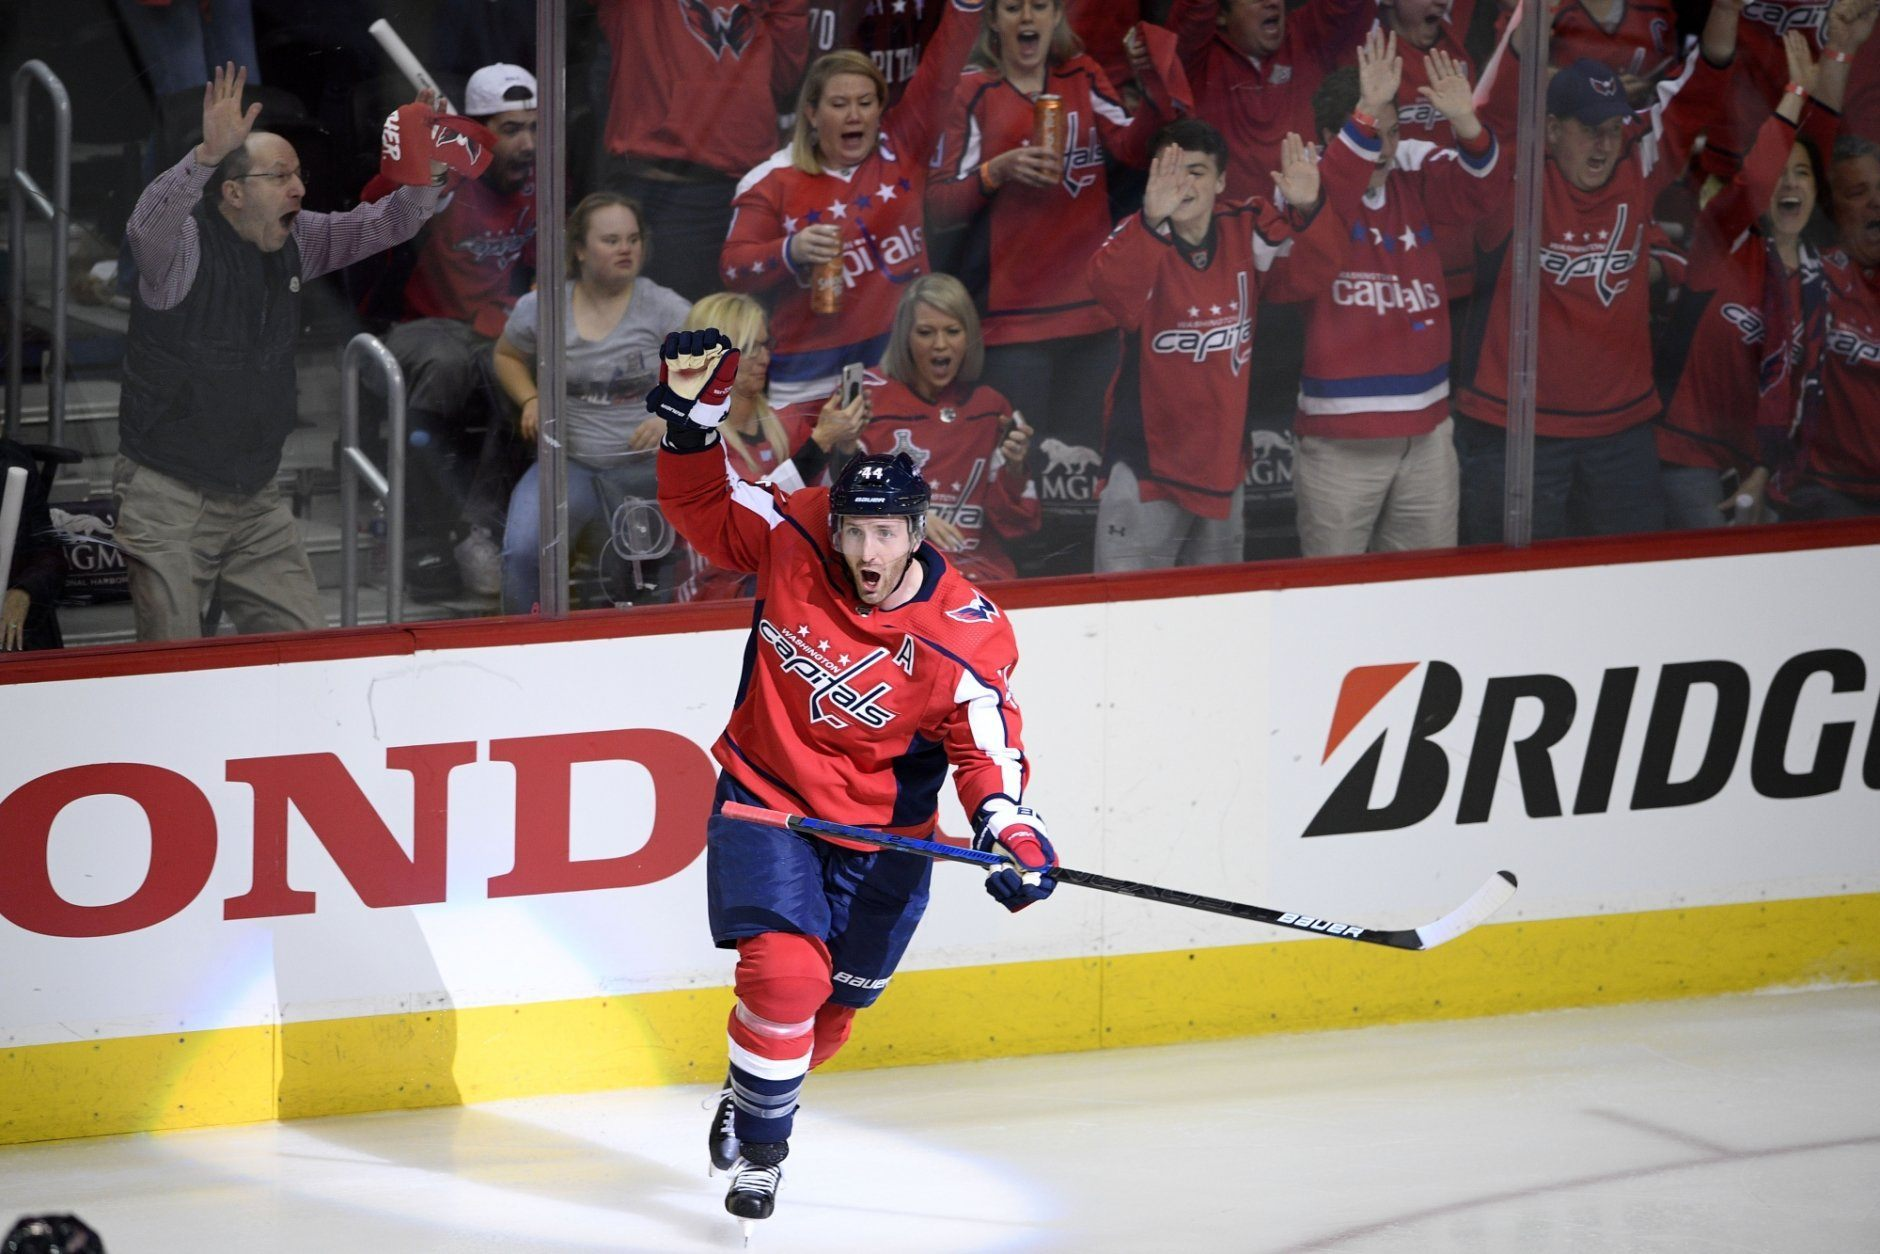 Washington Capitals defenseman Brooks Orpik (44) celebrates his game-winning goal in overtime of Game 2 of an NHL hockey first-round playoff series against the Carolina Hurricanes, Saturday, April 13, 2019, in Washington. The Capitals won 4-3 in overtime. (AP Photo/Nick Wass)